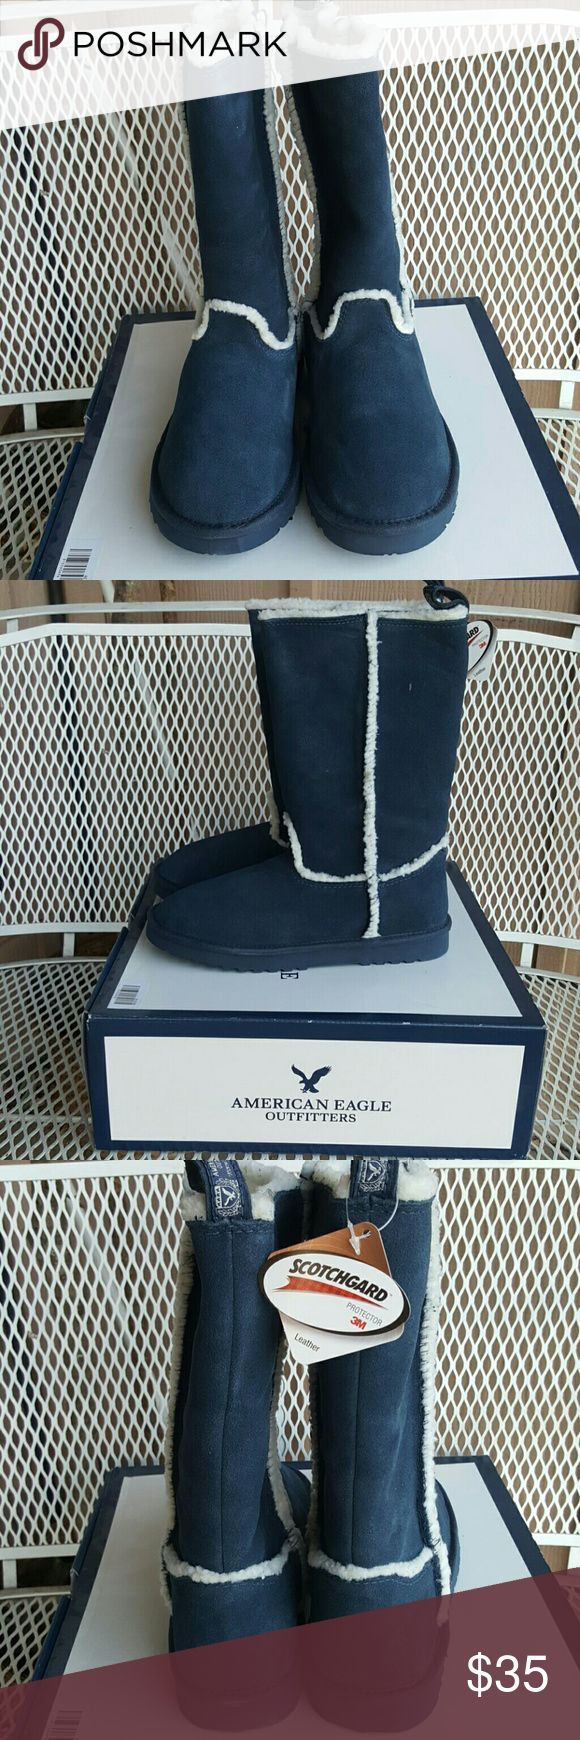 Size 9 NEW W/TAGS American Eagle Outfitters boots Navy blue gorgeous leather fuzzy boots American Eagle Outfitters Shoes Winter & Rain Boots